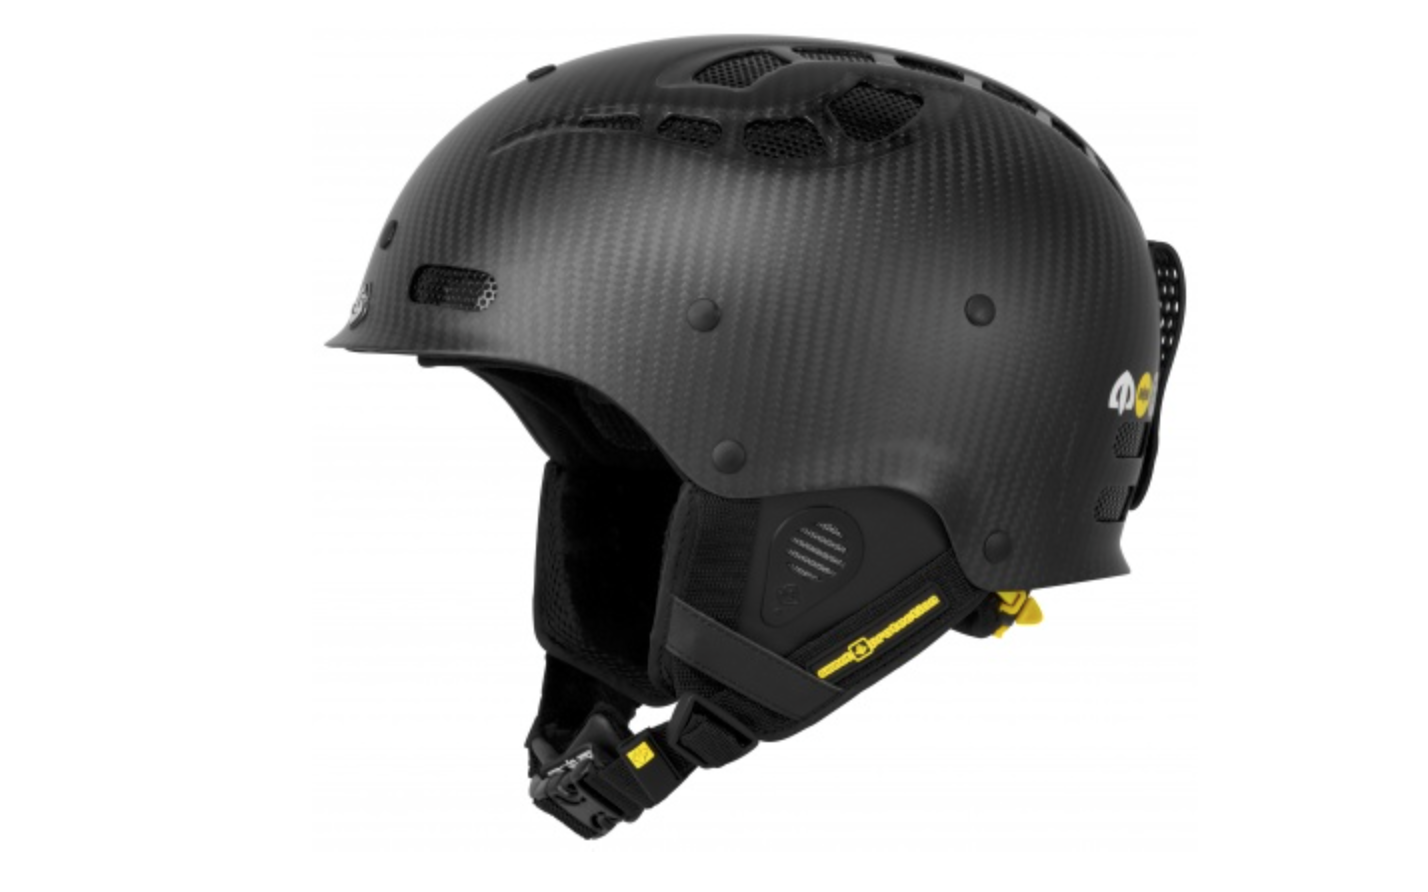 The Sweet Grimnir Is a Snow Sports Helmet Built For Safe Action Camera Use